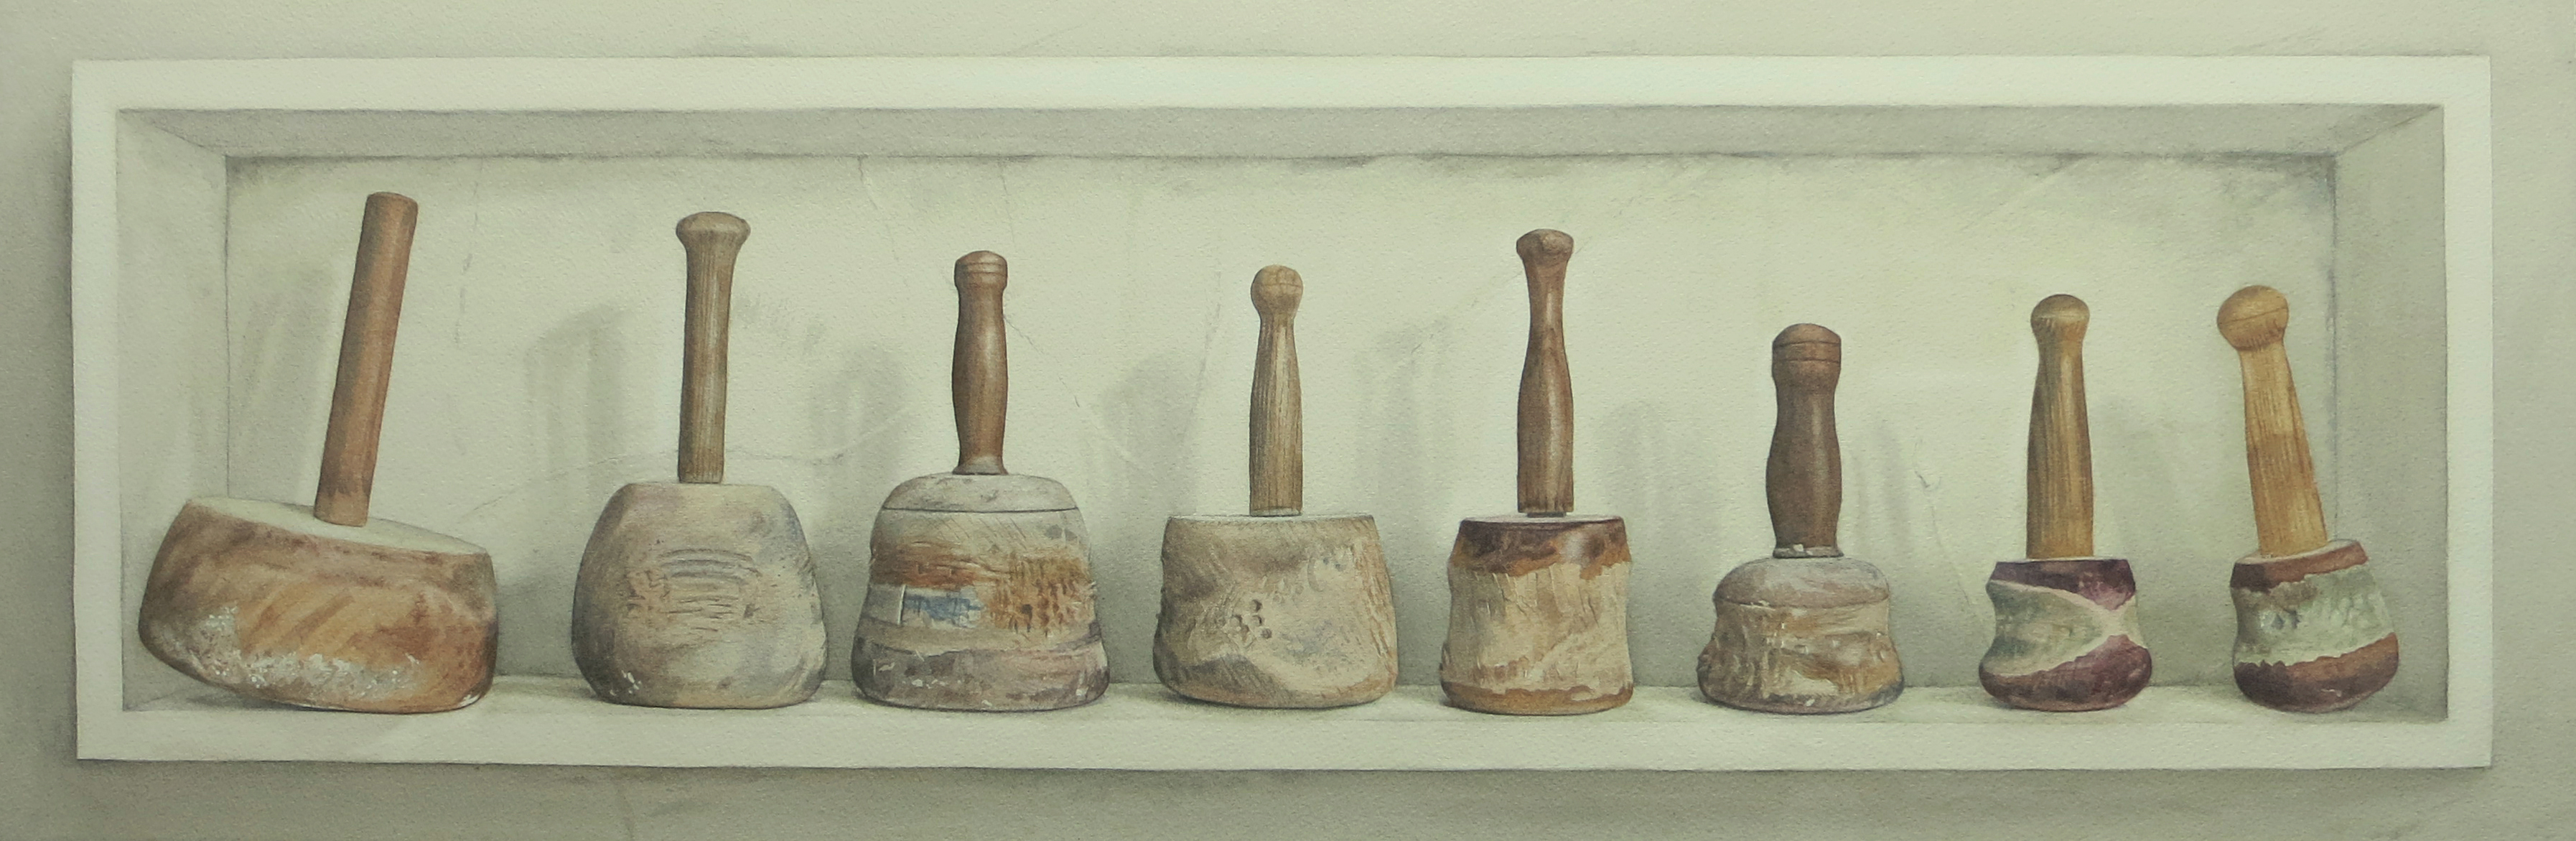 Mallets 31.5 x 96cm Watercolour by Lillias August ©